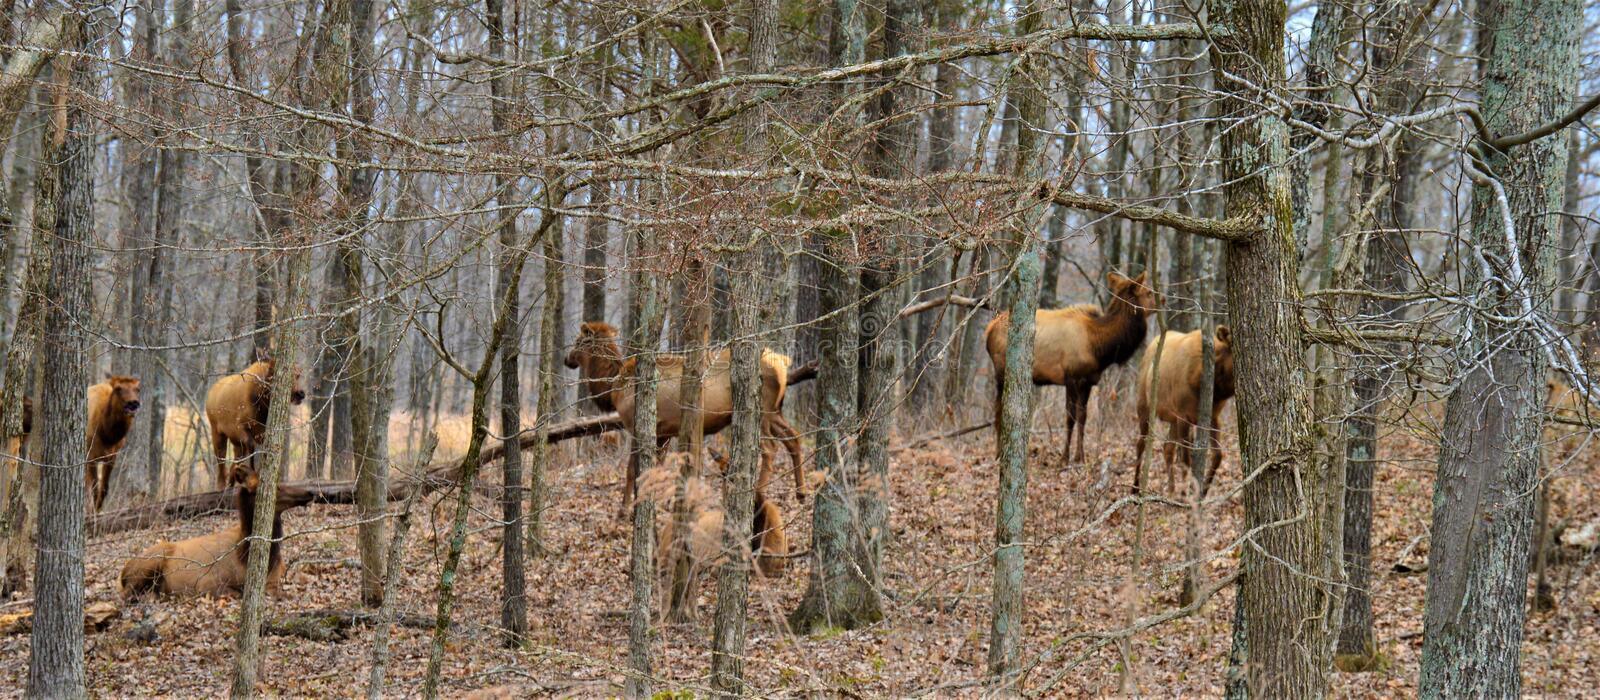 Herd of Elk Walking in a Forest royalty free stock images